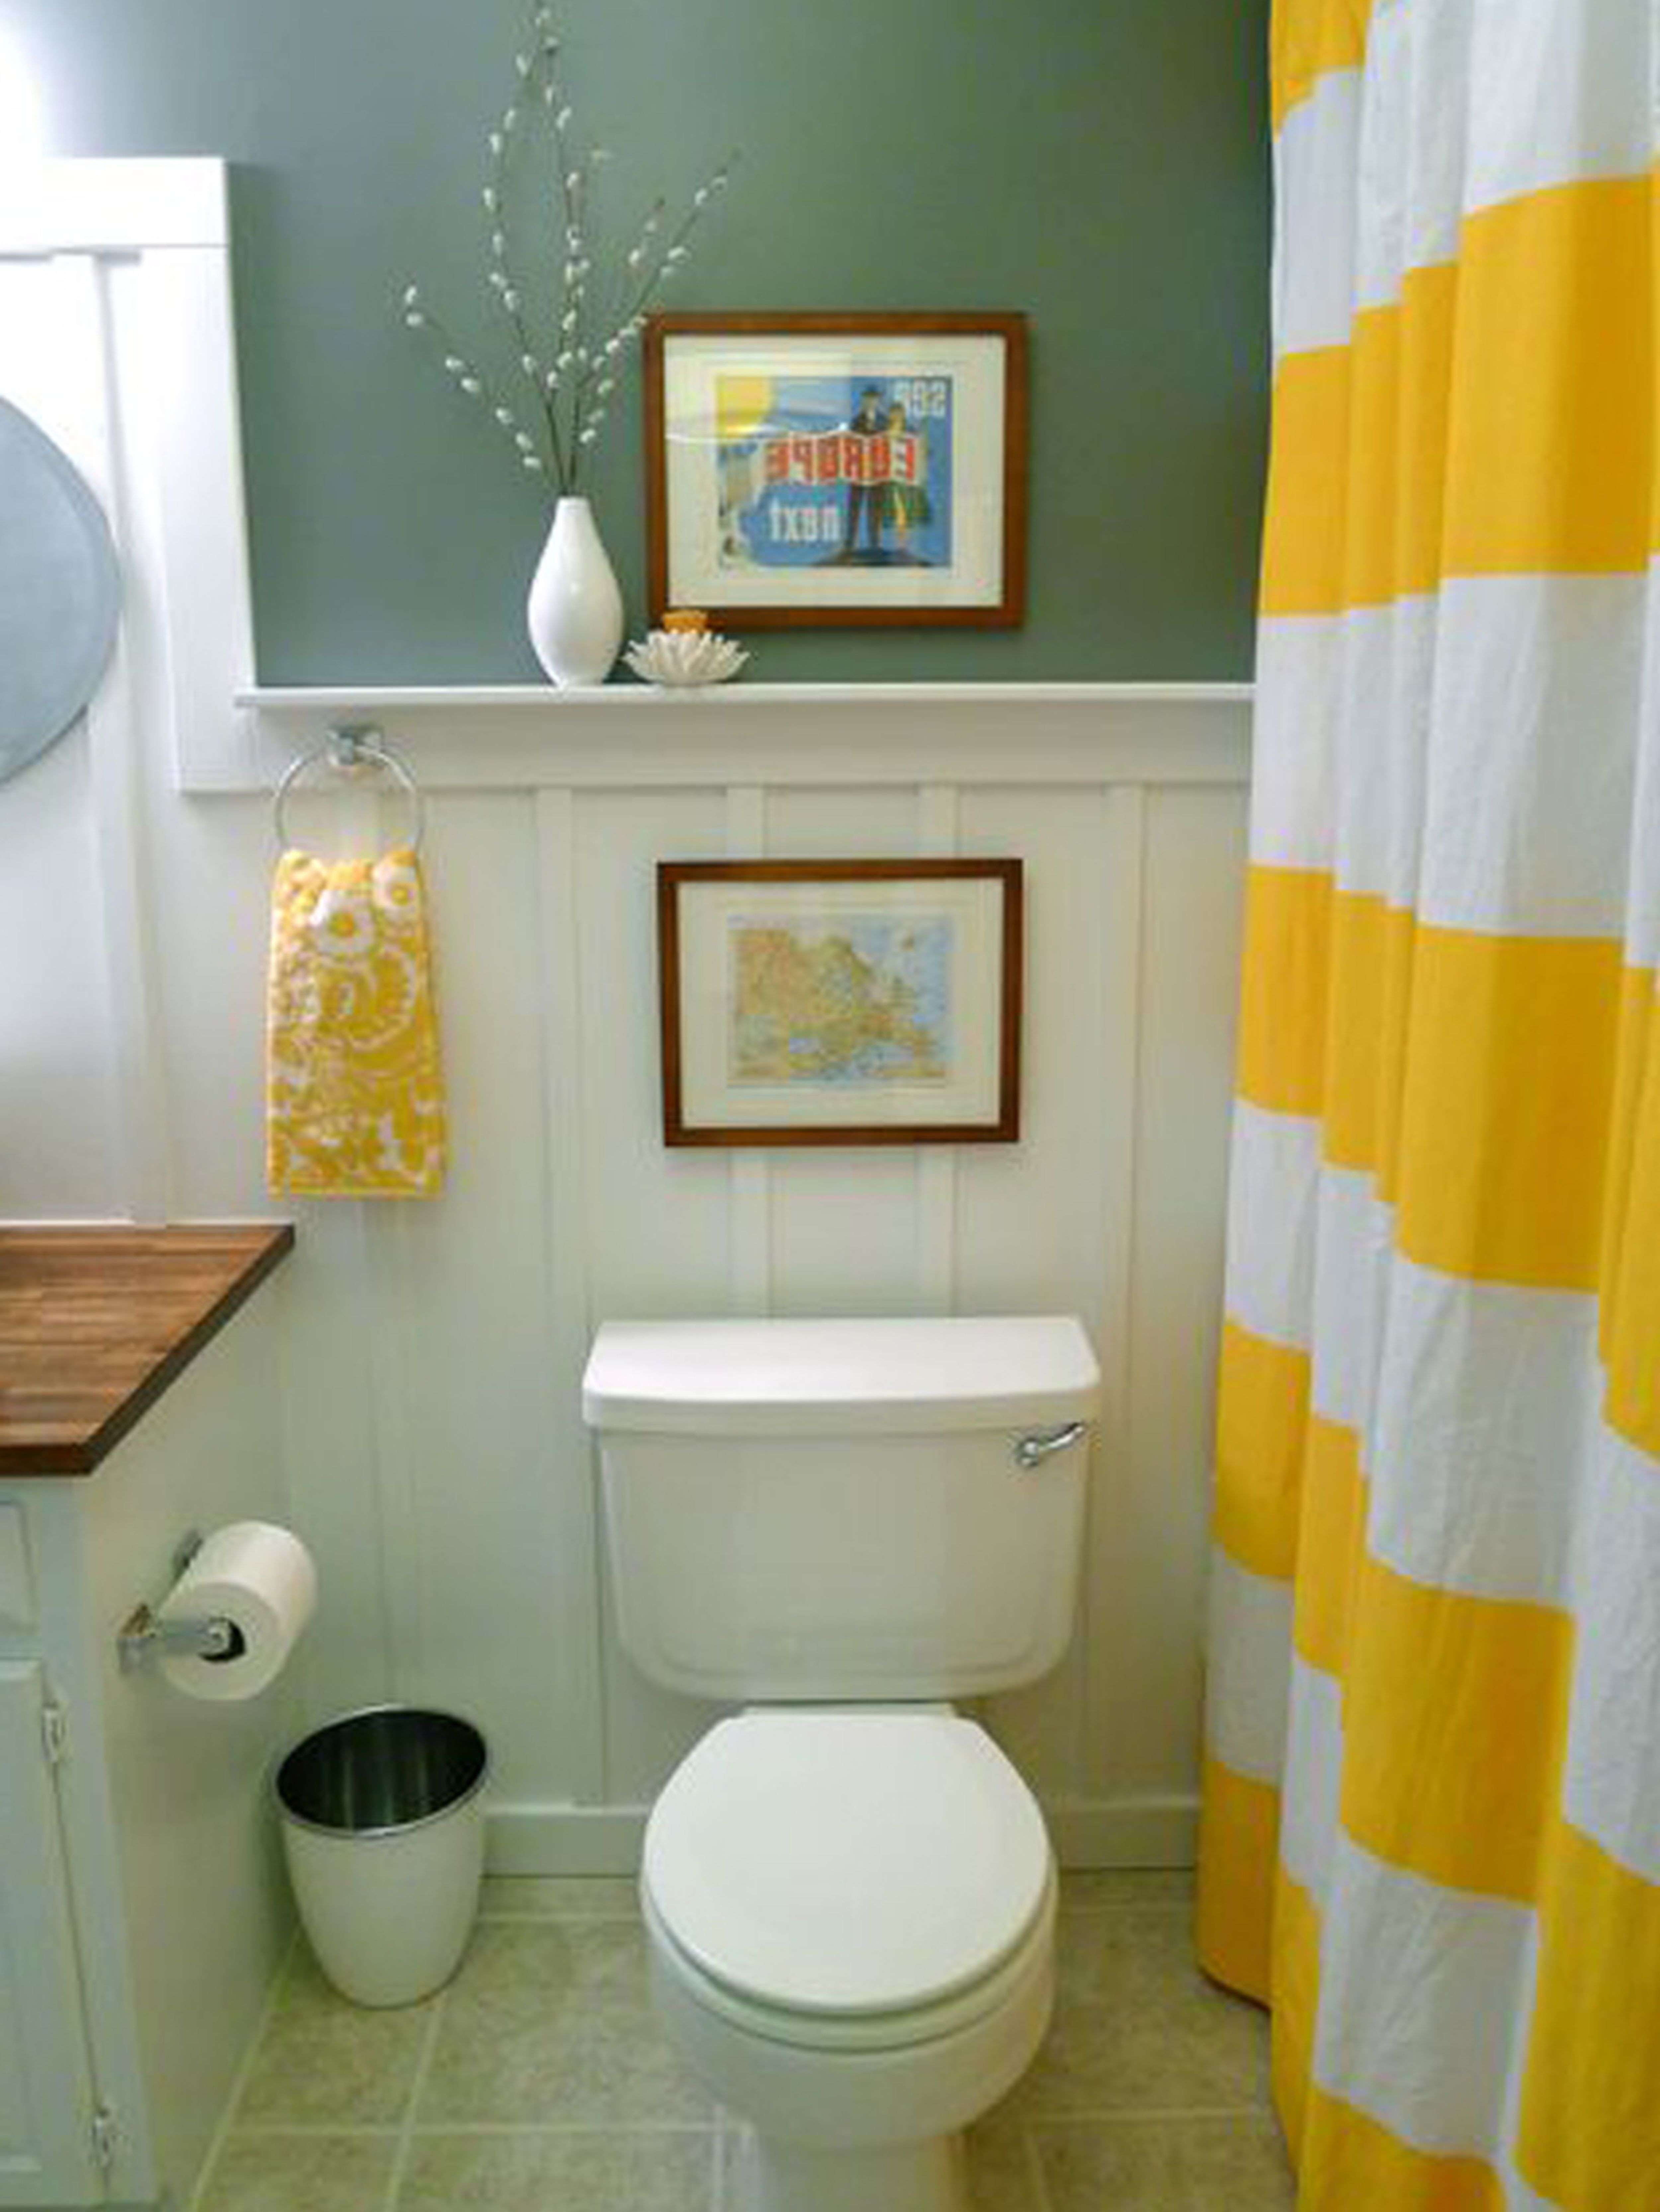 Decorating Ideas for Small Bathrooms In Apartments Unique Incredible Bathroom Ideas for Apartments Creative